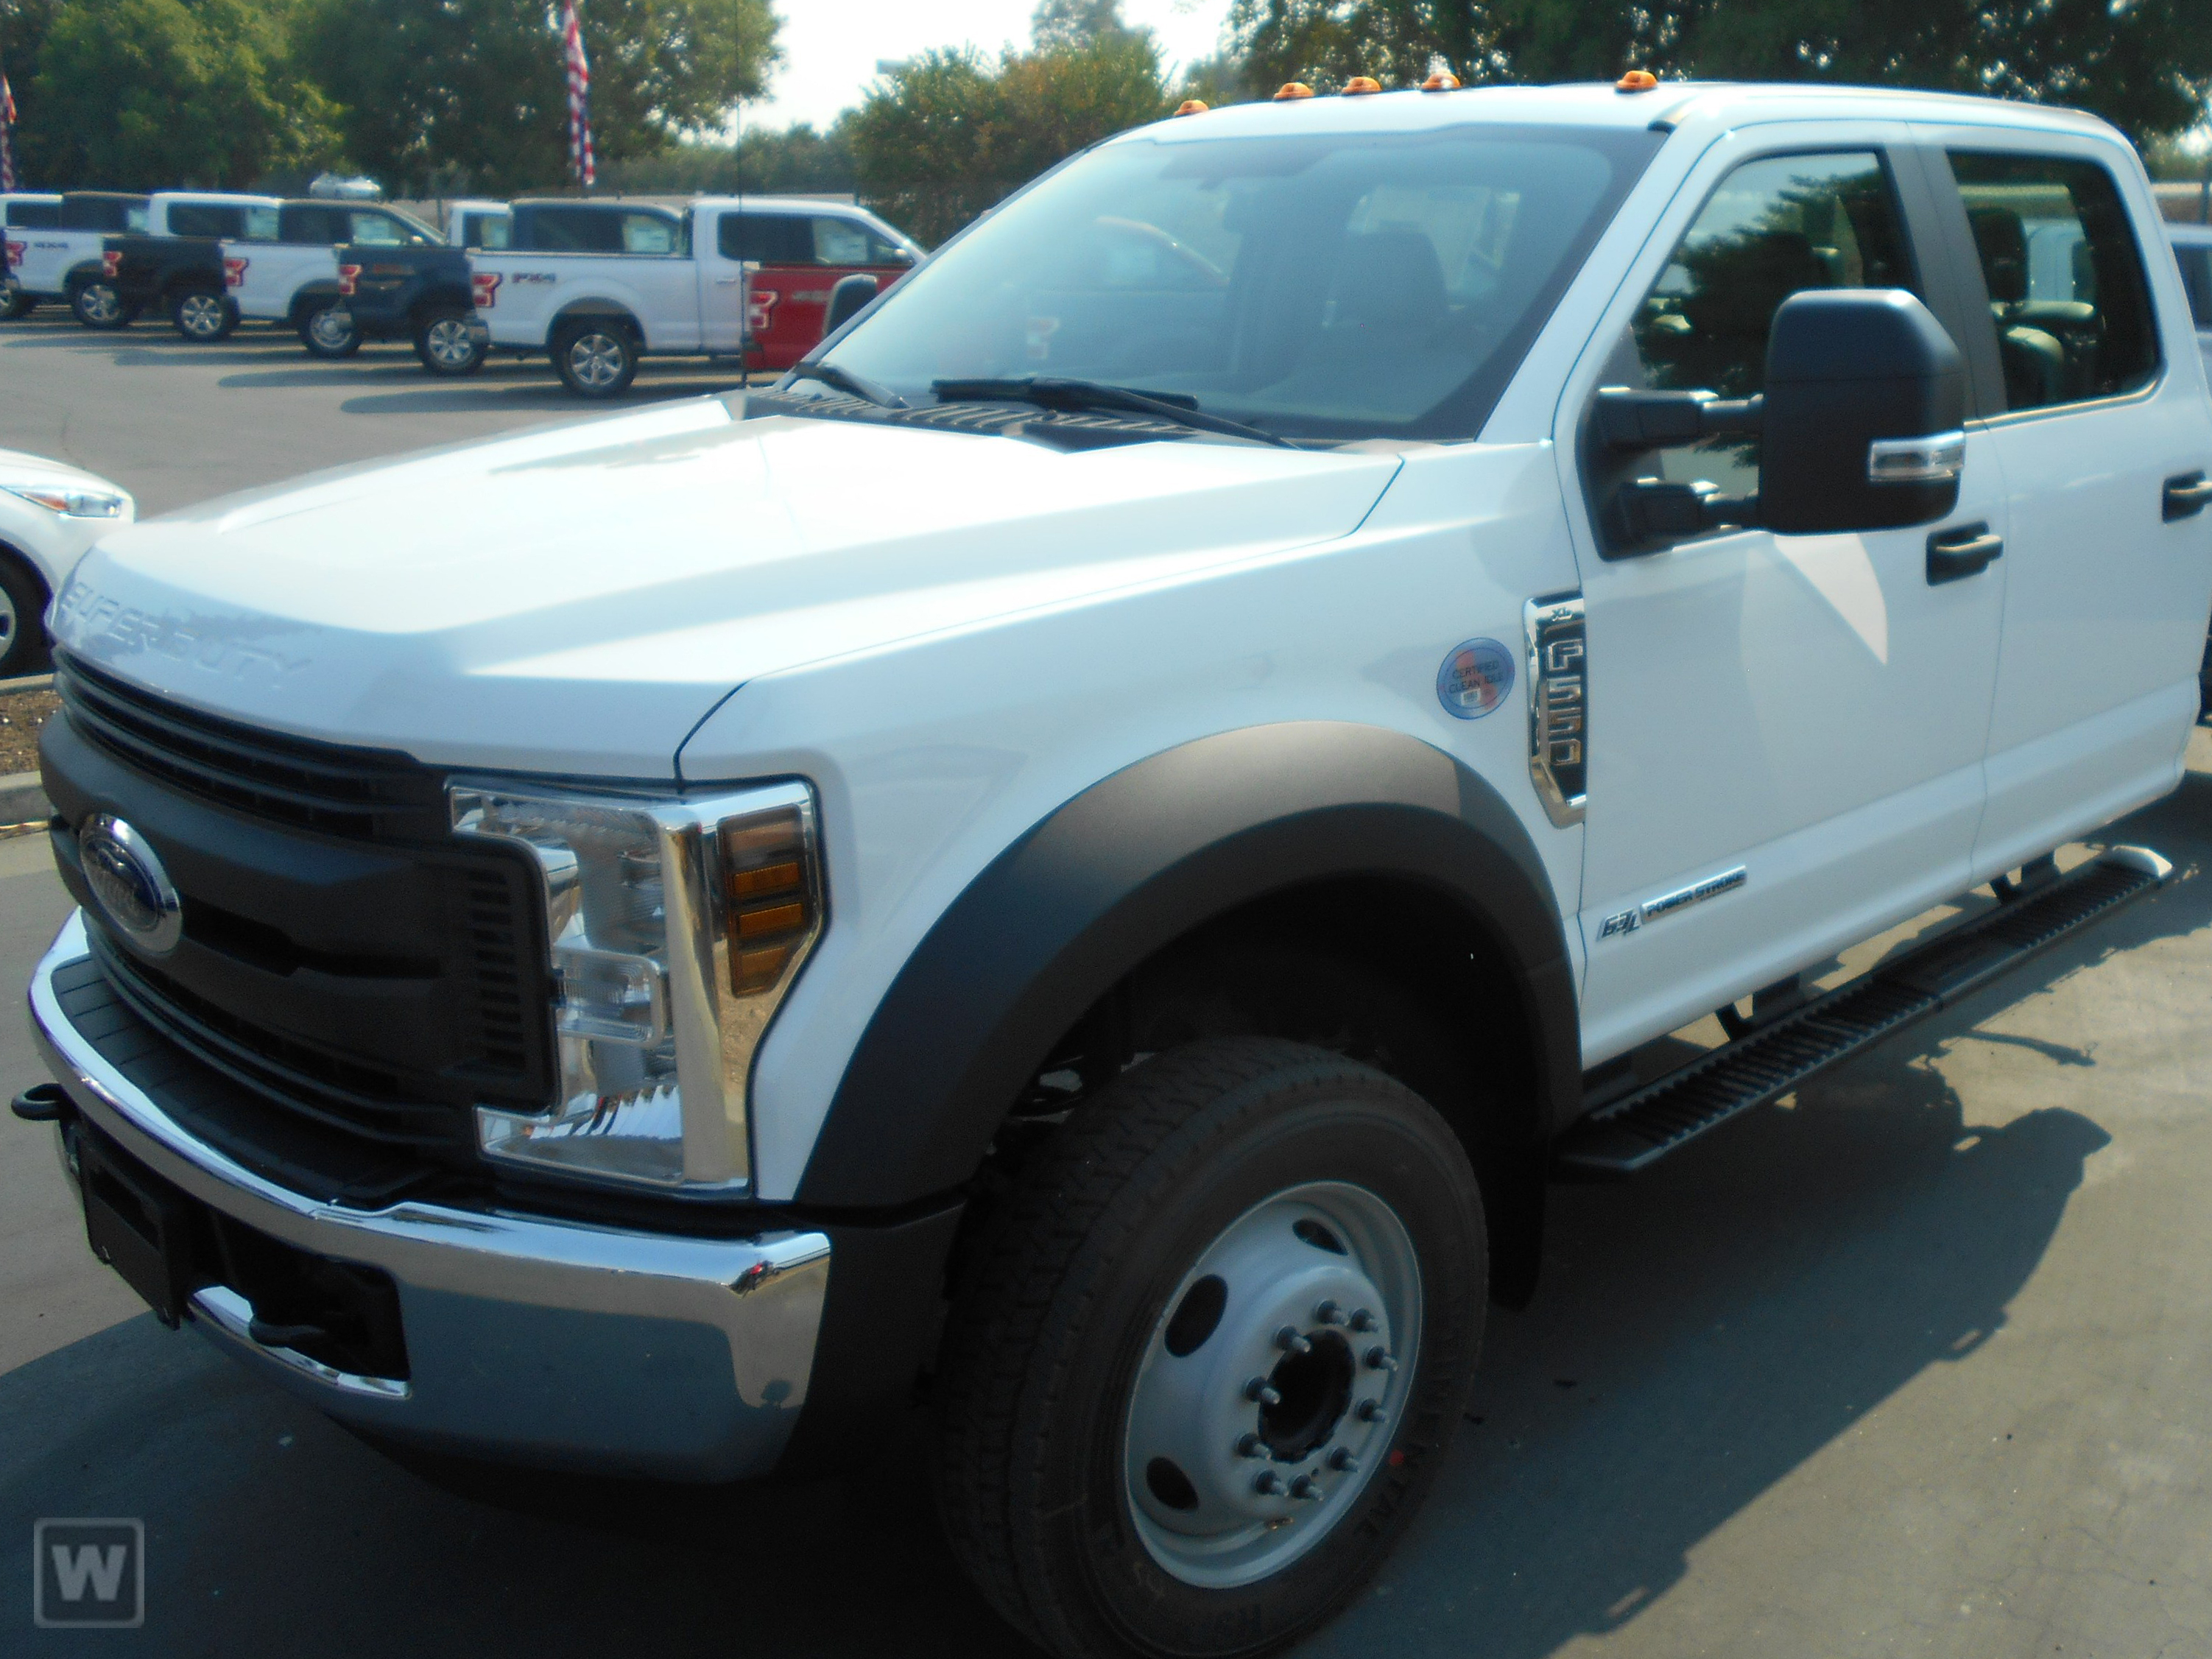 NEW 2019 FORD F-550 XL CREW CAB CHASSIS TRUCK #644615